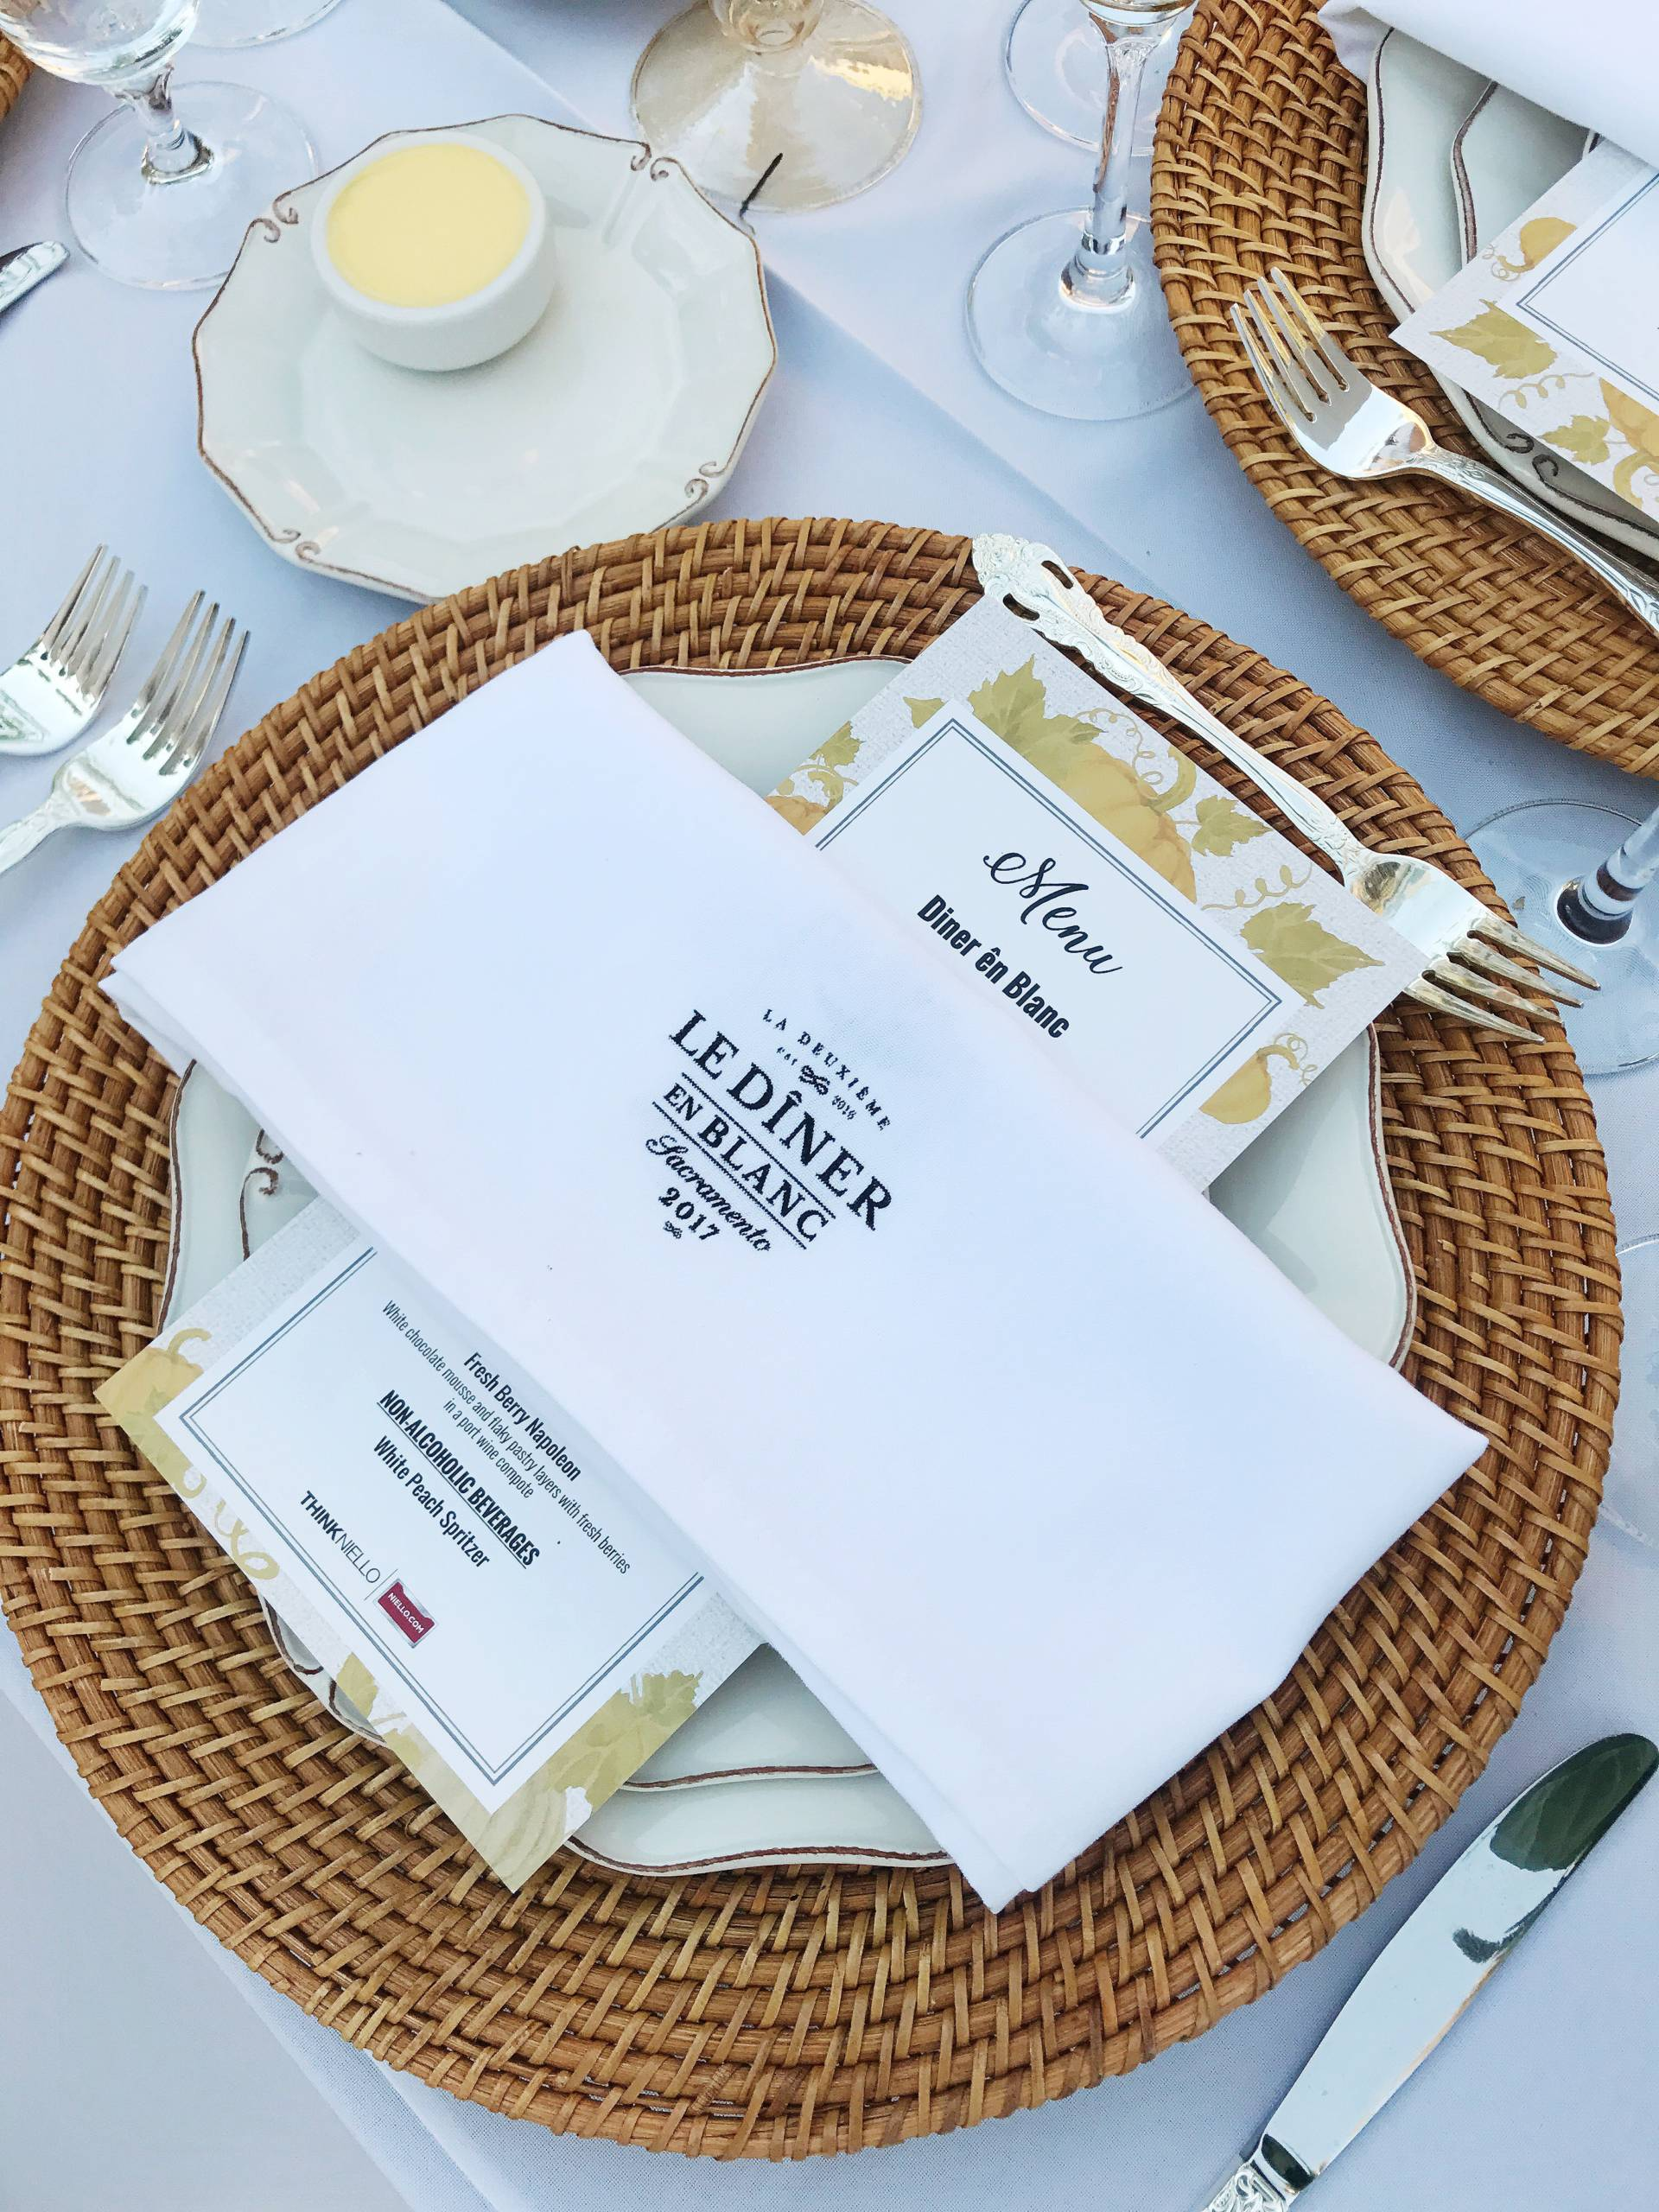 A worldwide dining event started in Paris in 1988 has now come to Sacramento! Read about year 2 of Diner En Blanc here in our very own city!